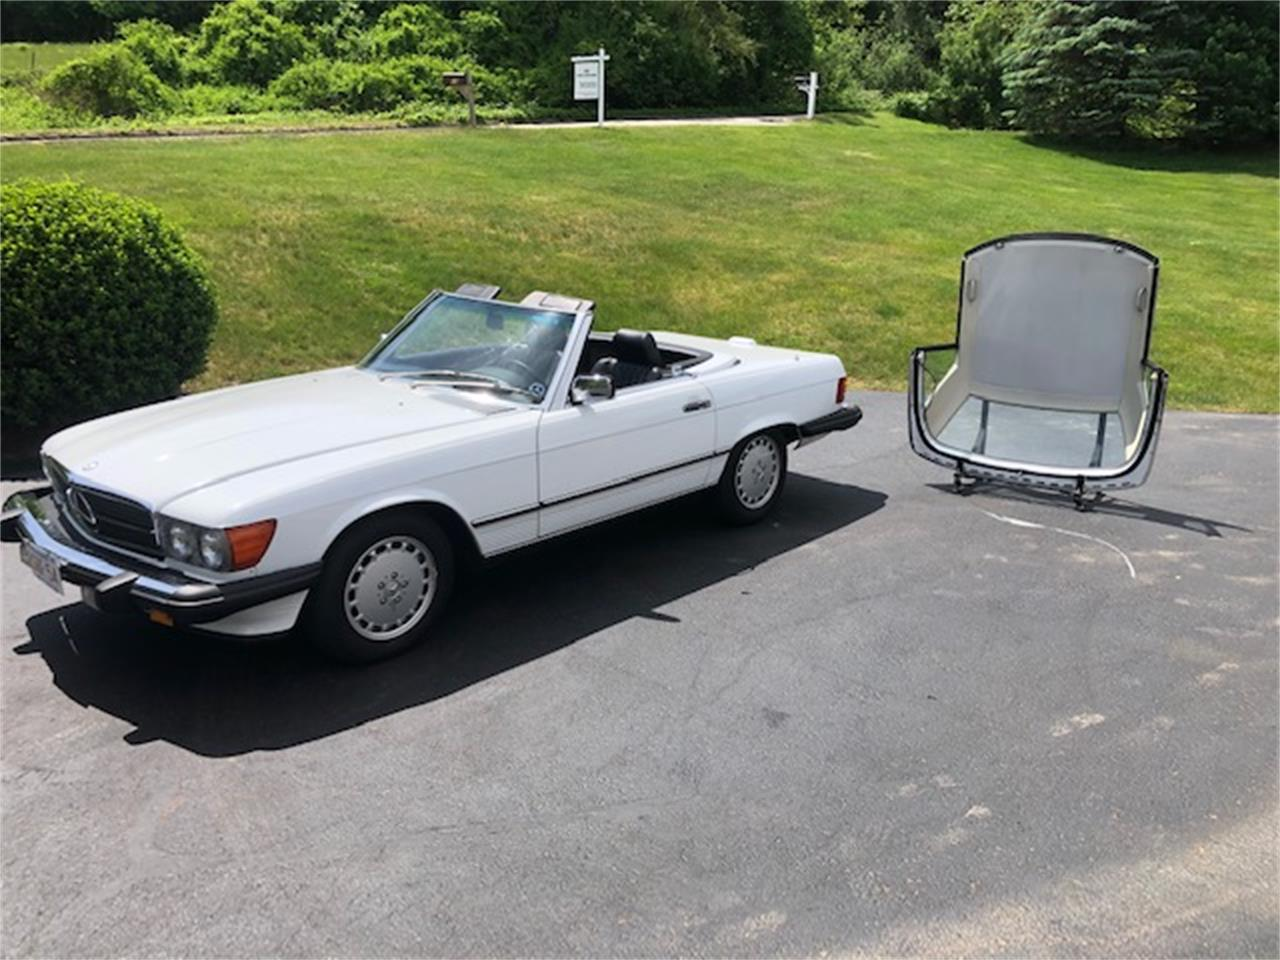 1989 Mercedes-Benz 560SL (CC-1353927) for sale in Wayland, Massachusetts